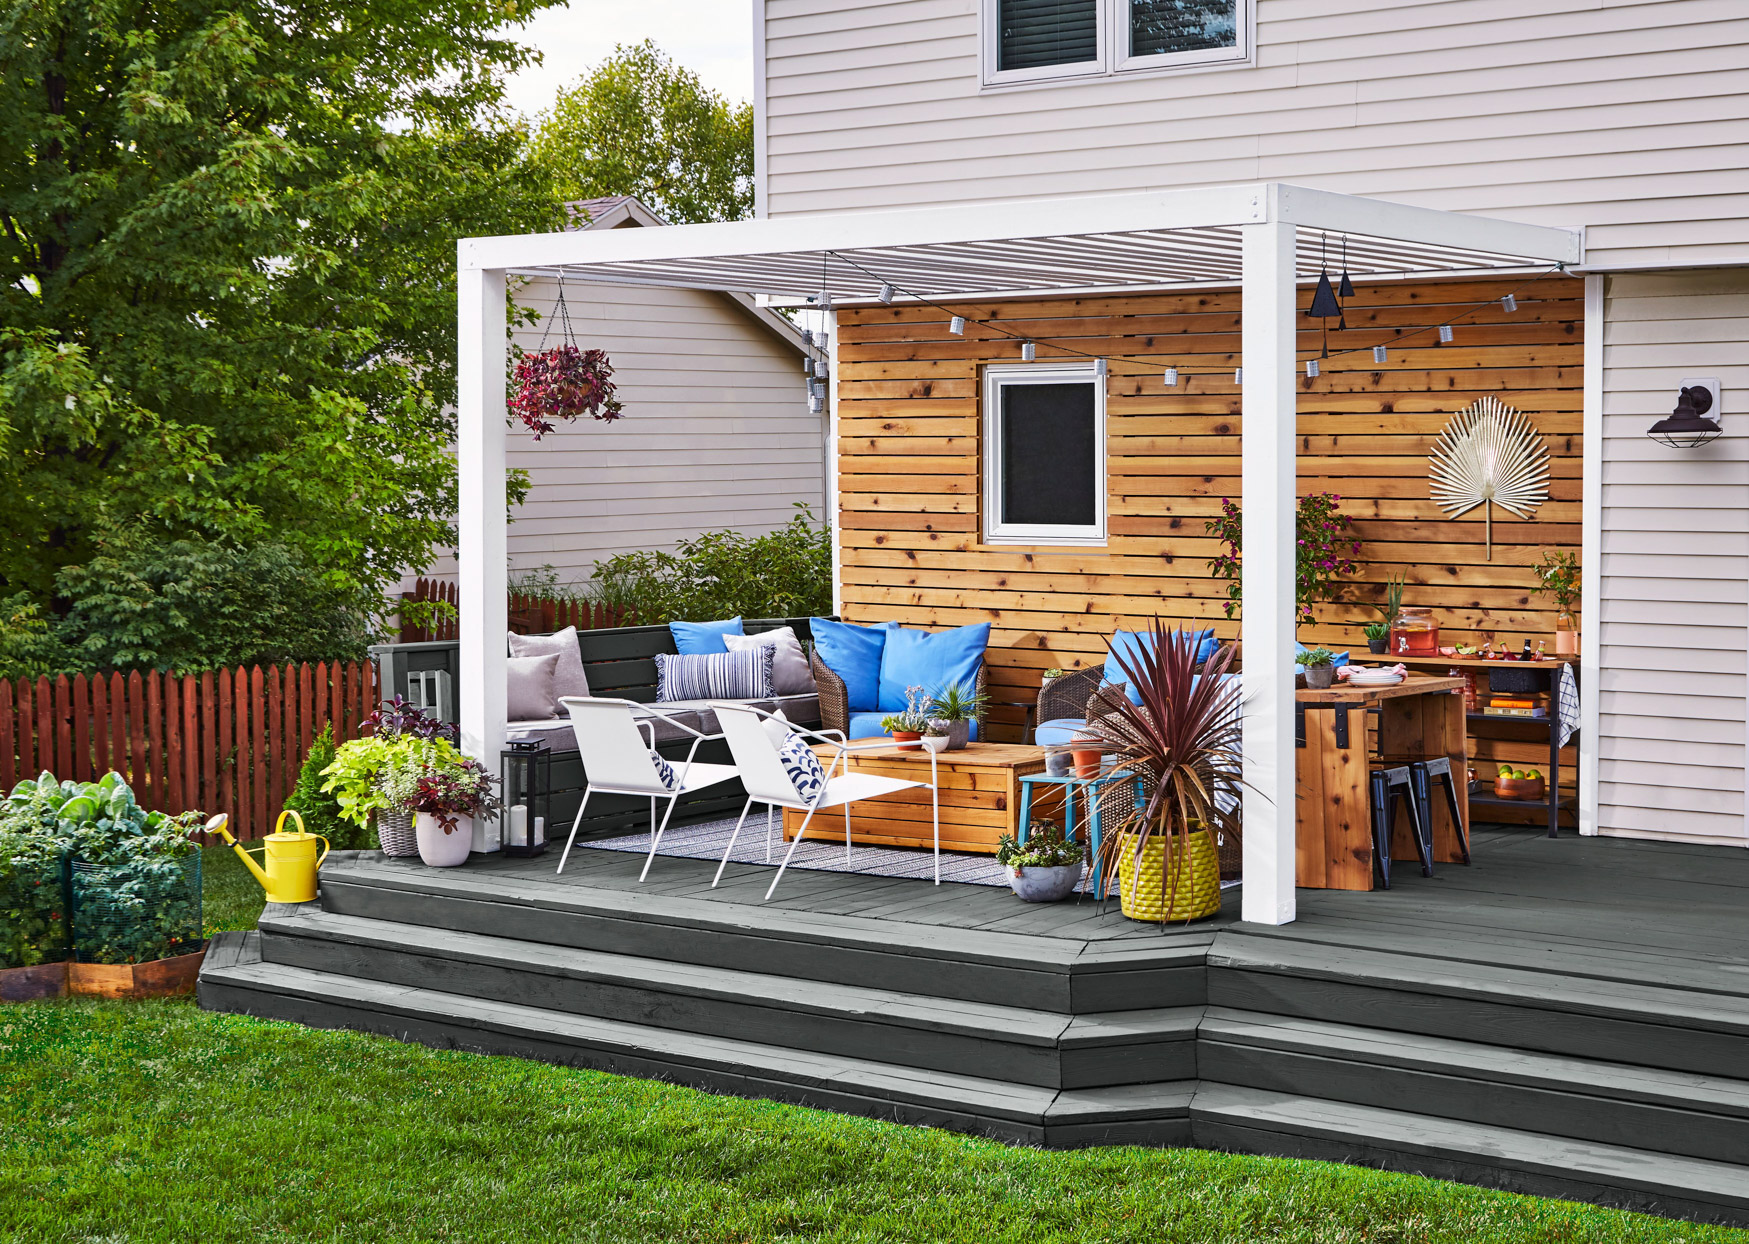 8 Small Deck Design Ideas To Expand Your Outdoor Living Potential Better Homes Gardens